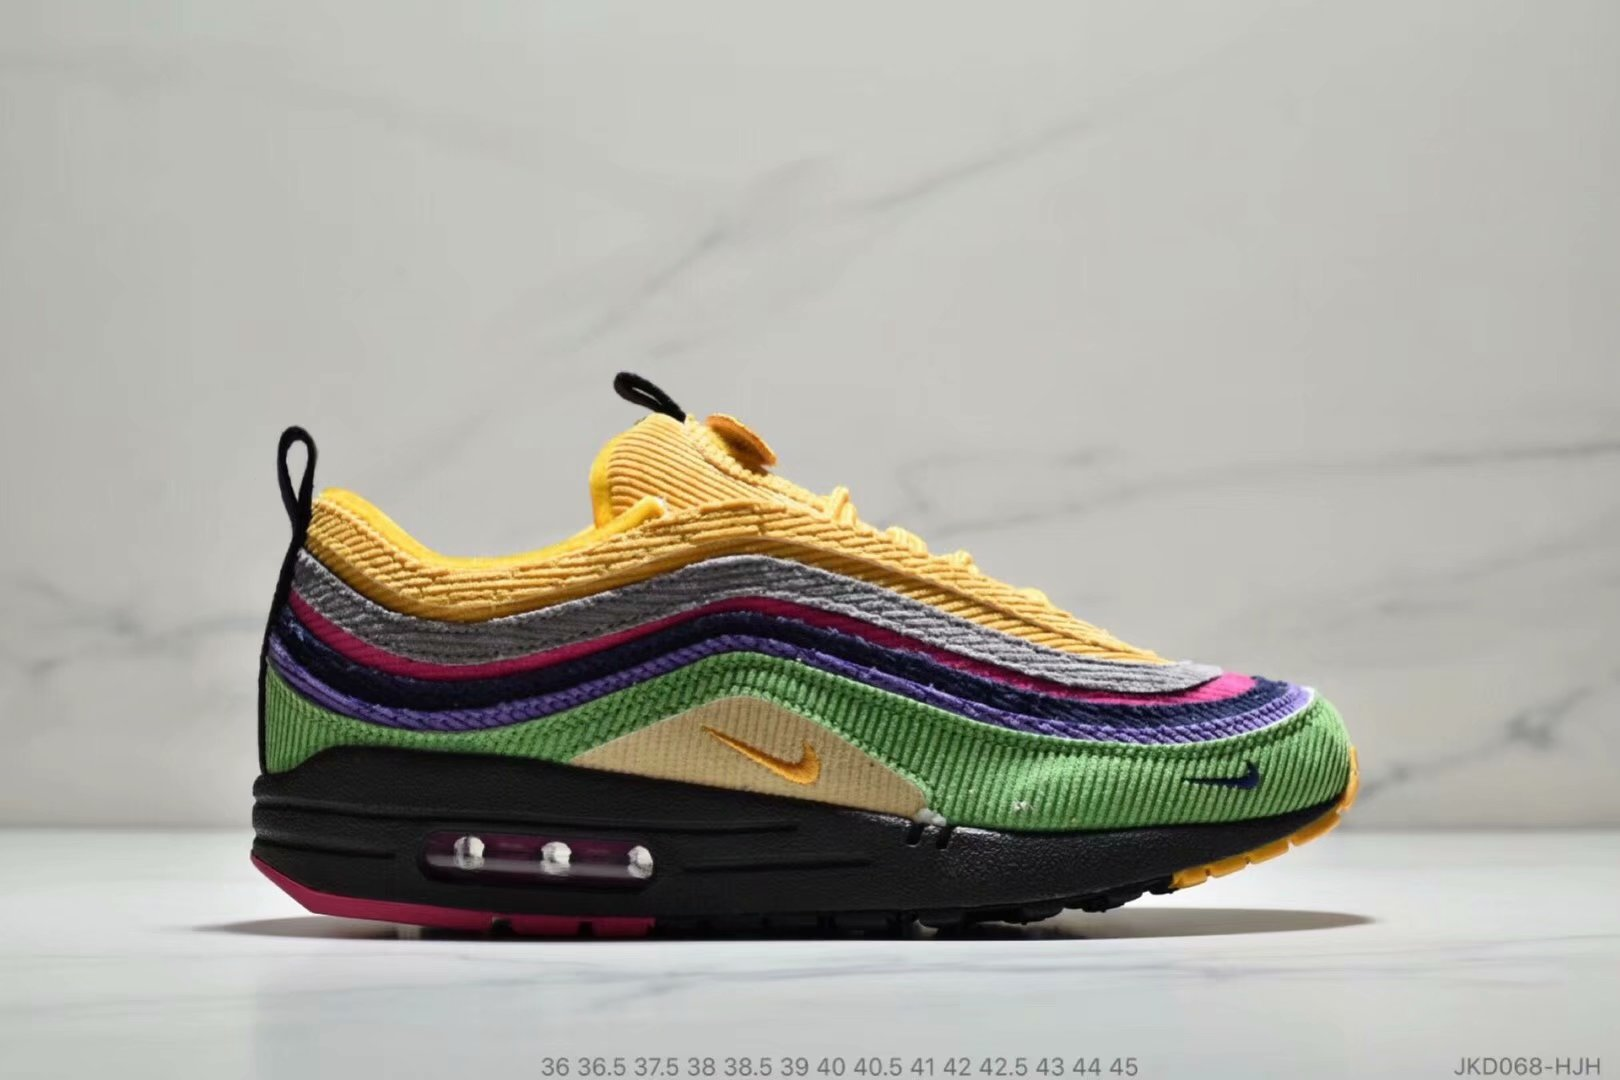 Nike Air Max 87 1 Sean Wotherspoon Grass Green Yellow Grey Purple Black